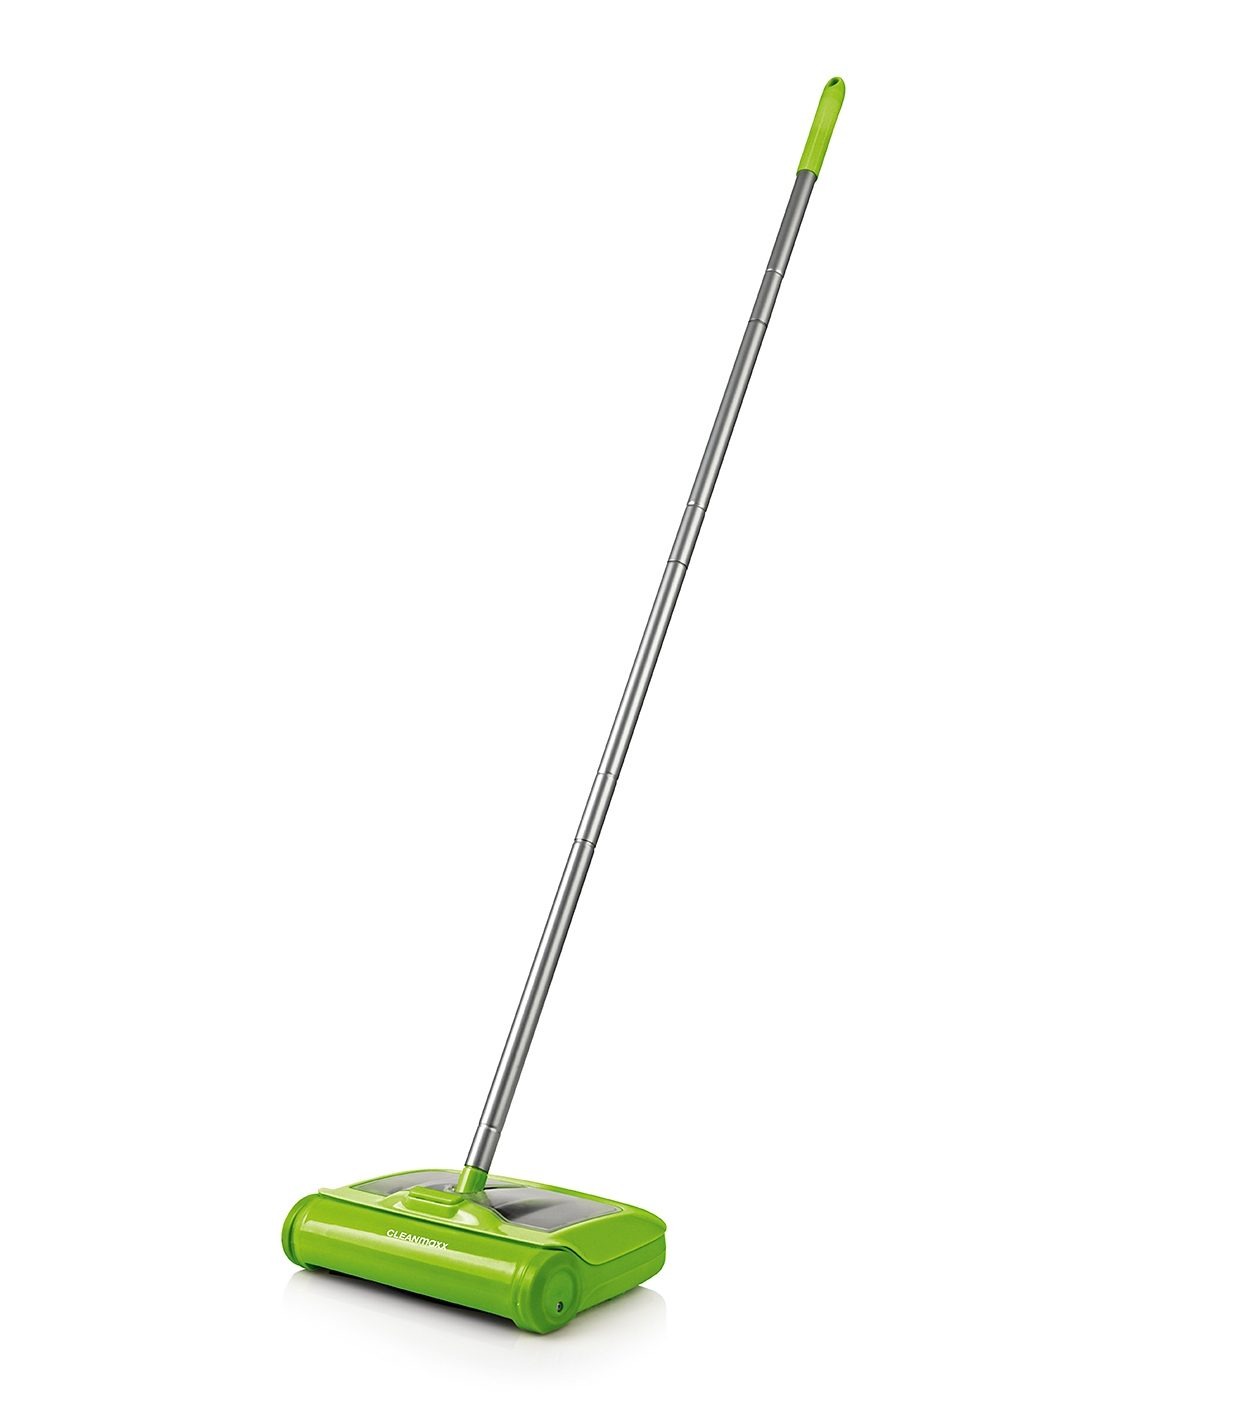 CLEANmaxx Bodenkehrer 2 in 1